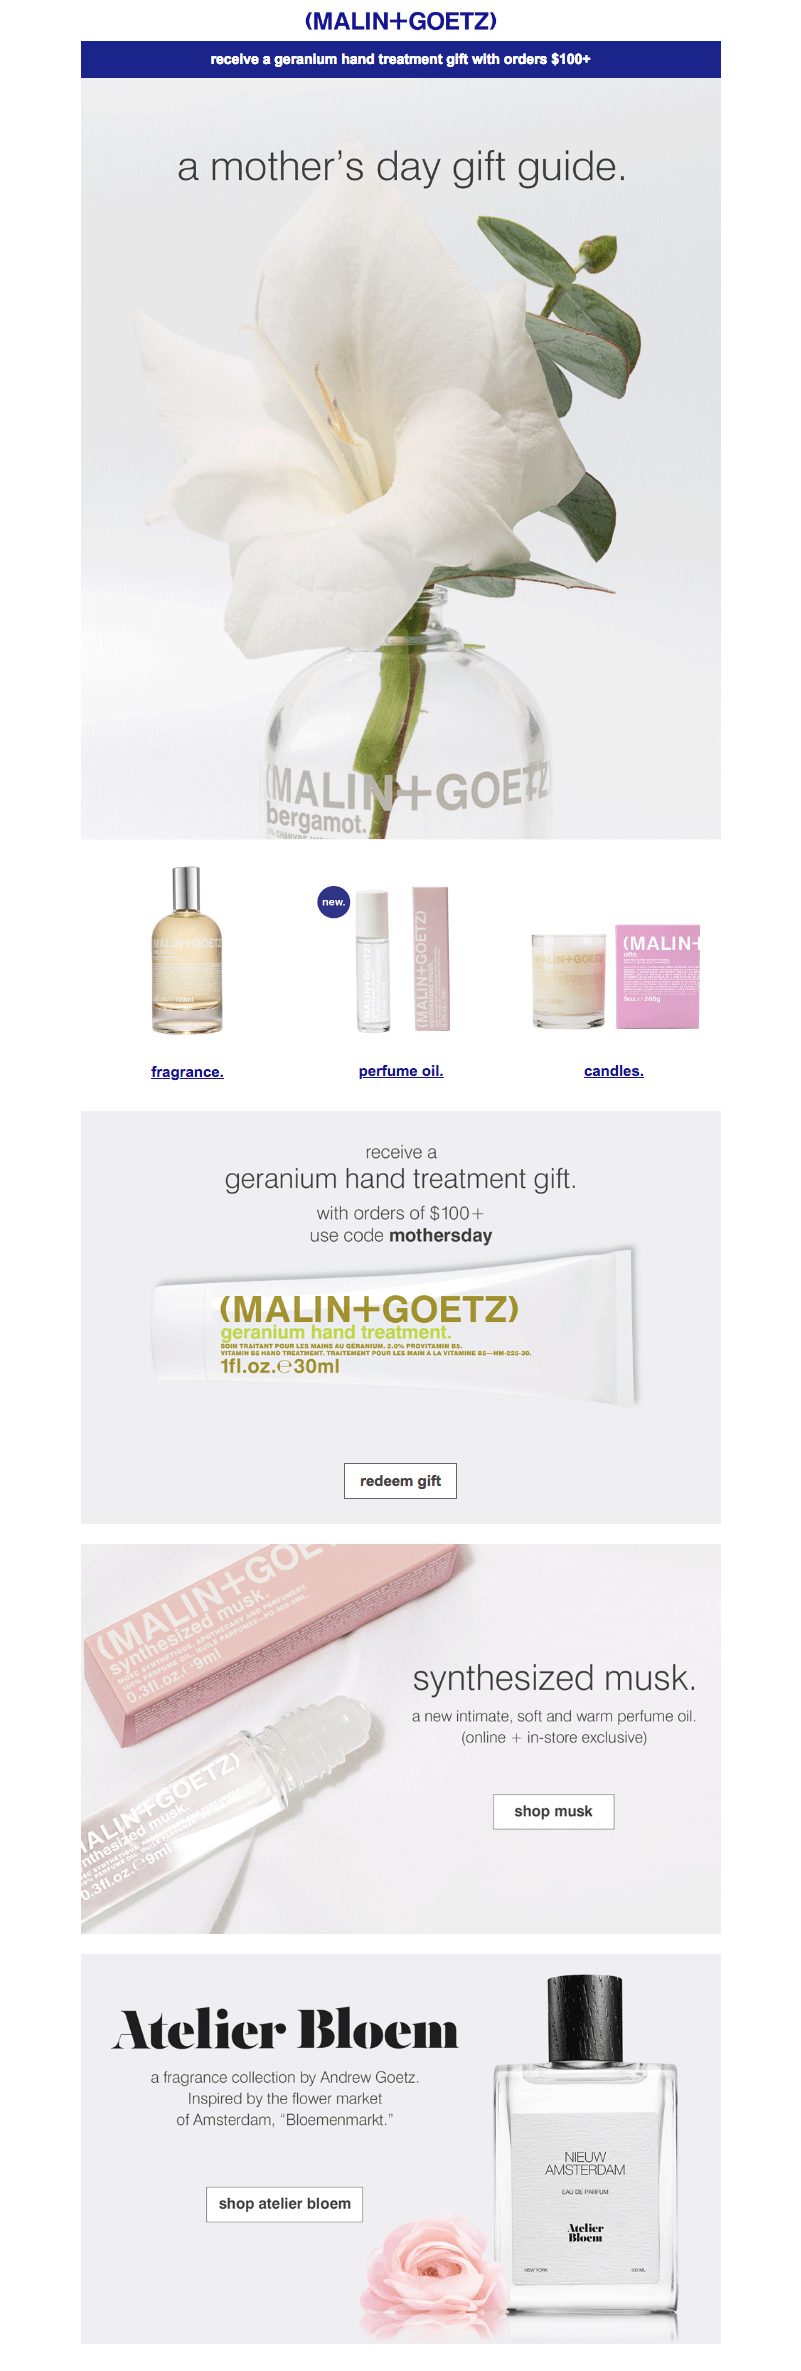 malin+goetz Mother's Day emails